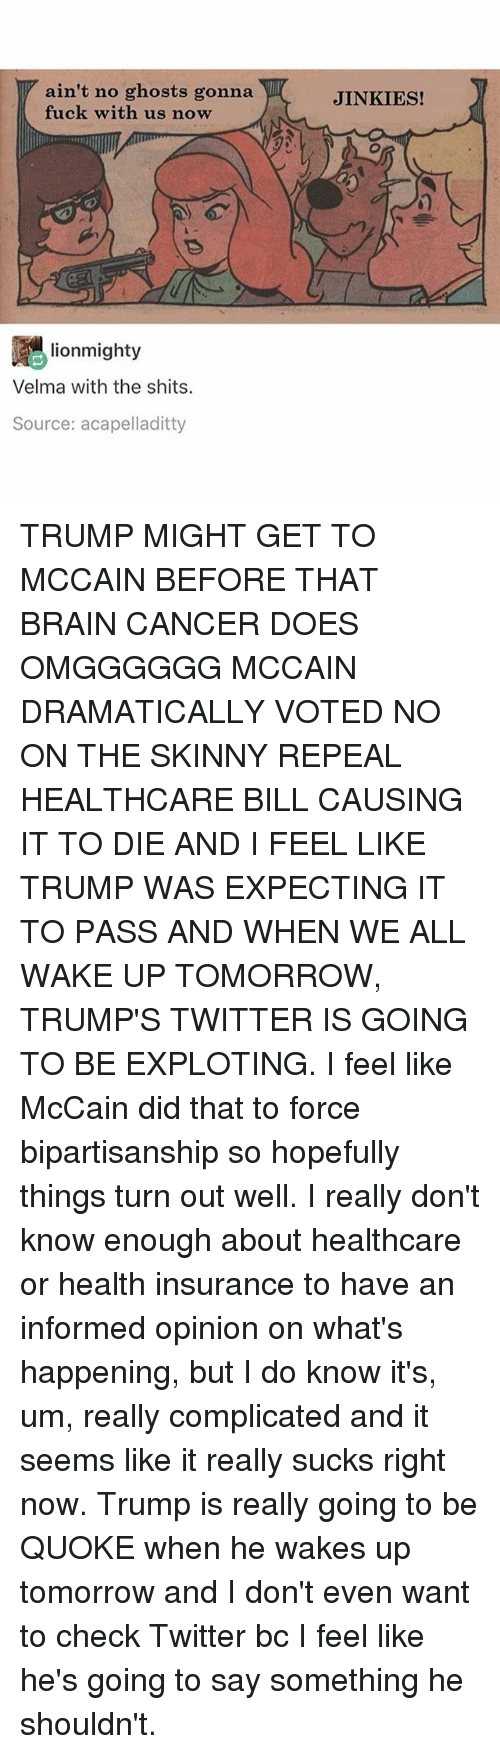 Ironic, Skinny, and Twitter: ain't no ghosts gonna  fuck with us now  JINKIES!  lionmighty  Velma with the shits.  Source: acapelladitty TRUMP MIGHT GET TO MCCAIN BEFORE THAT BRAIN CANCER DOES OMGGGGGG MCCAIN DRAMATICALLY VOTED NO ON THE SKINNY REPEAL HEALTHCARE BILL CAUSING IT TO DIE AND I FEEL LIKE TRUMP WAS EXPECTING IT TO PASS AND WHEN WE ALL WAKE UP TOMORROW, TRUMP'S TWITTER IS GOING TO BE EXPLOTING. I feel like McCain did that to force bipartisanship so hopefully things turn out well. I really don't know enough about healthcare or health insurance to have an informed opinion on what's happening, but I do know it's, um, really complicated and it seems like it really sucks right now. Trump is really going to be QUOKE when he wakes up tomorrow and I don't even want to check Twitter bc I feel like he's going to say something he shouldn't.